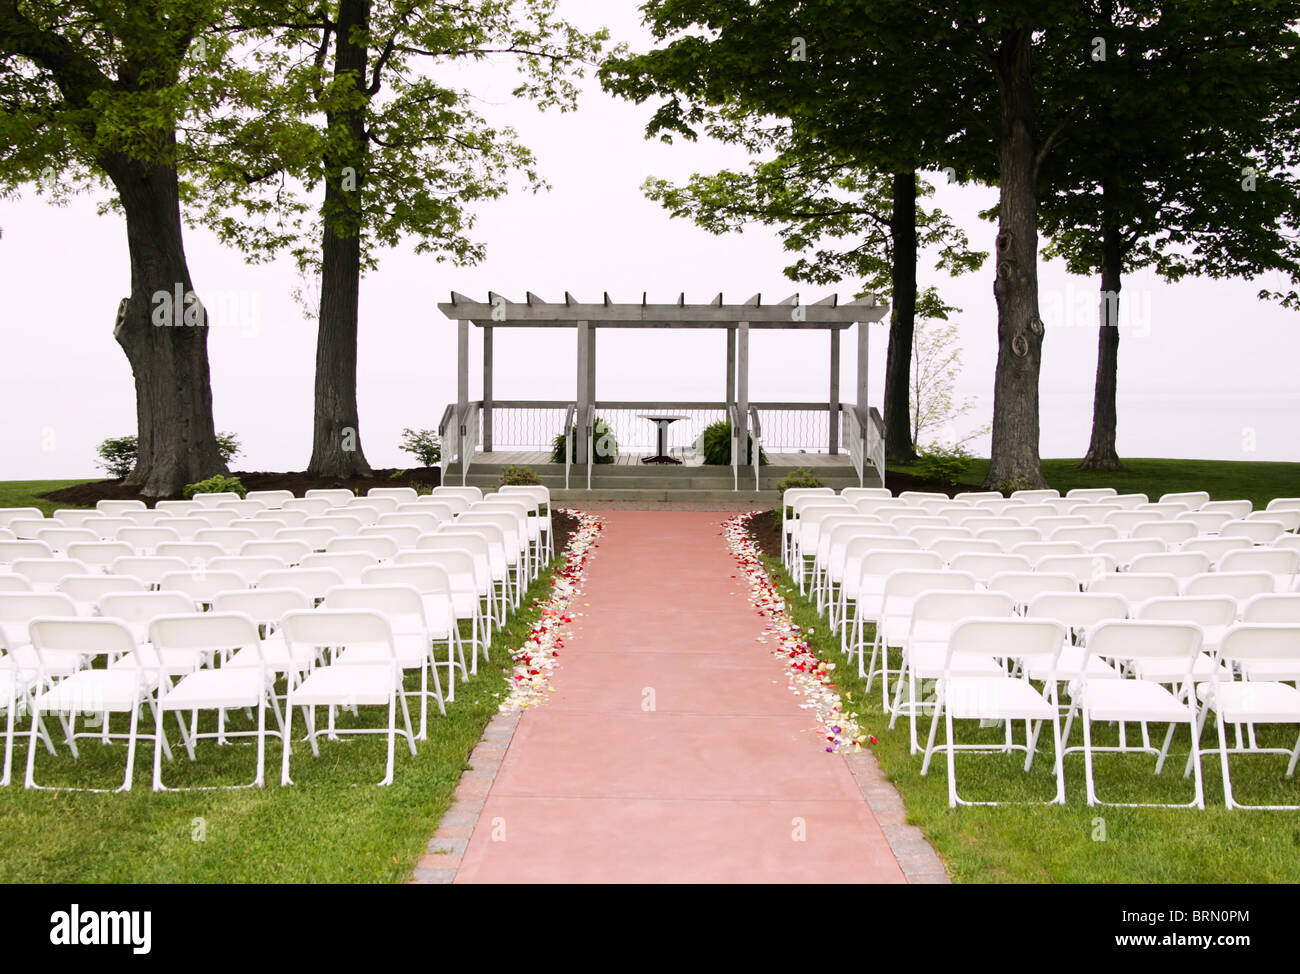 White Folding Chairs Setup For A Wedding Ceremony Stock Photo Alamy